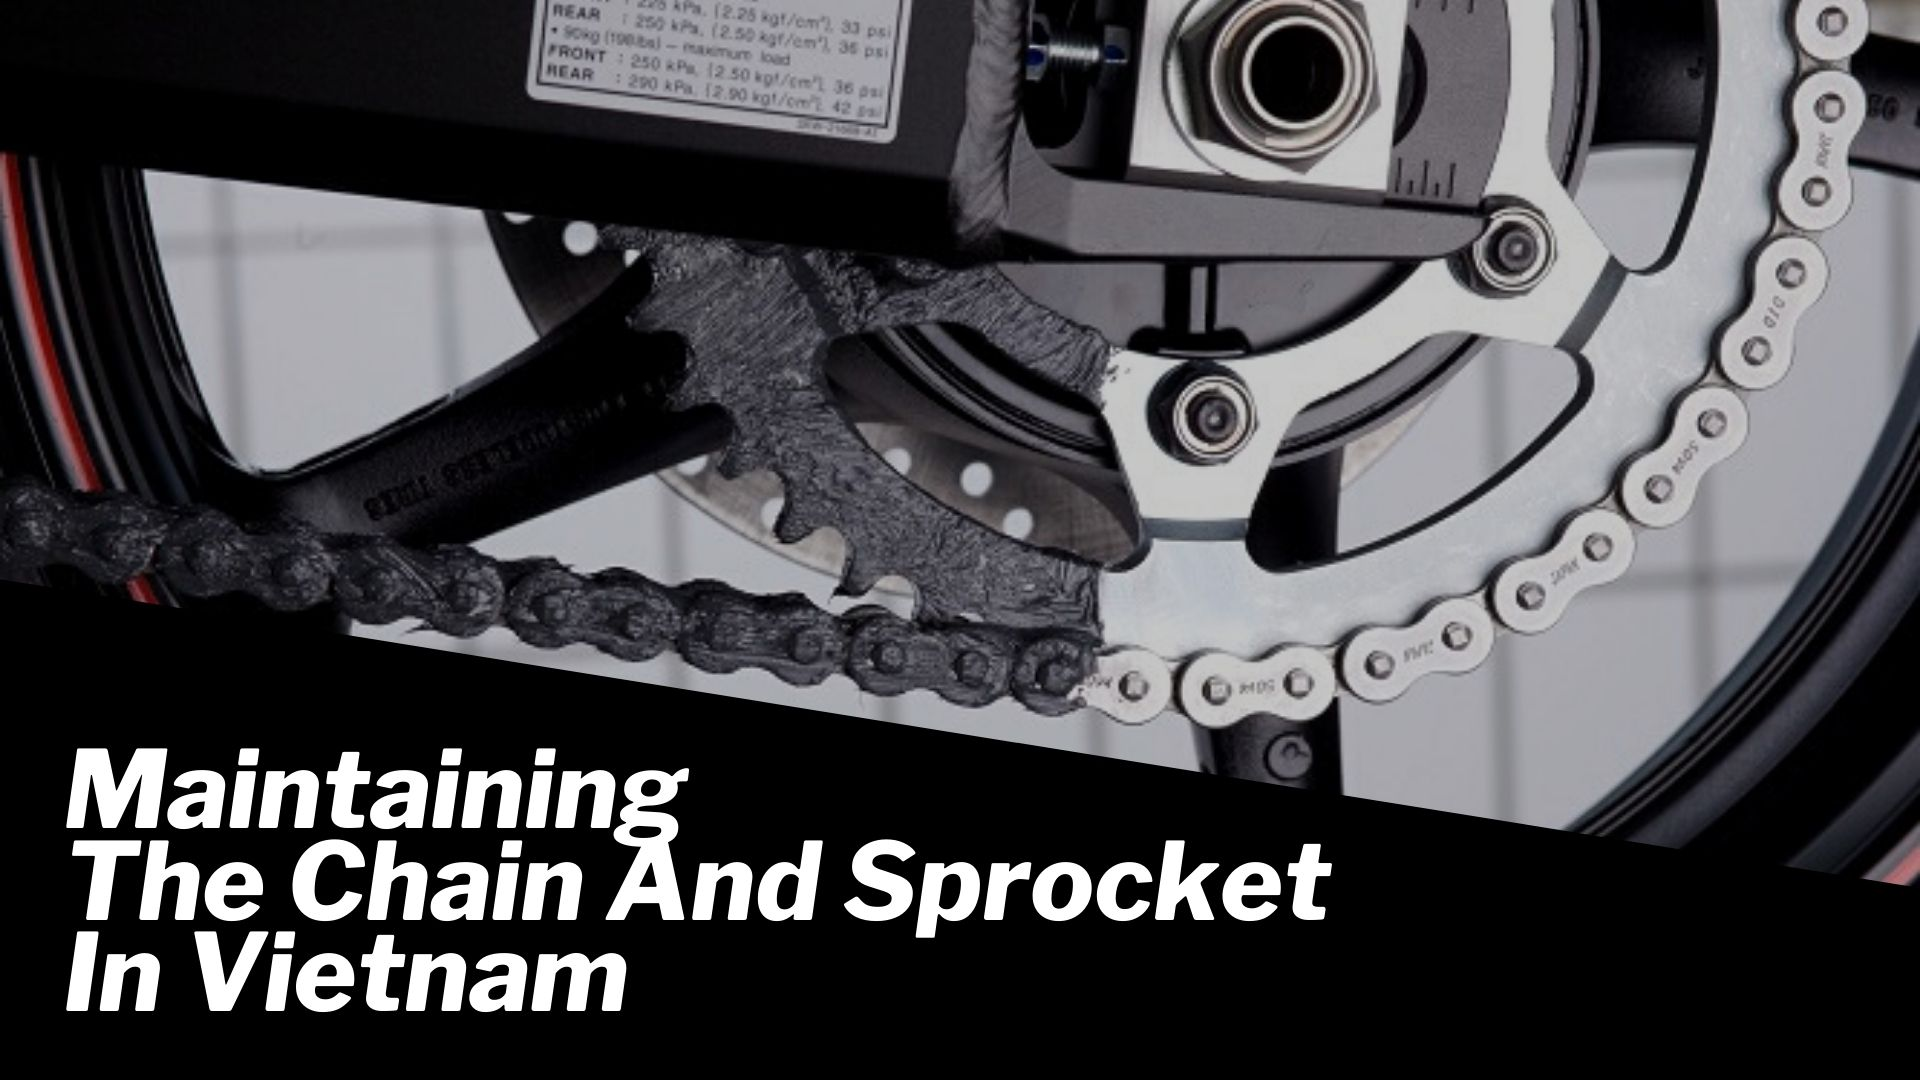 Maintaining the chain and sprocket in Vietnam